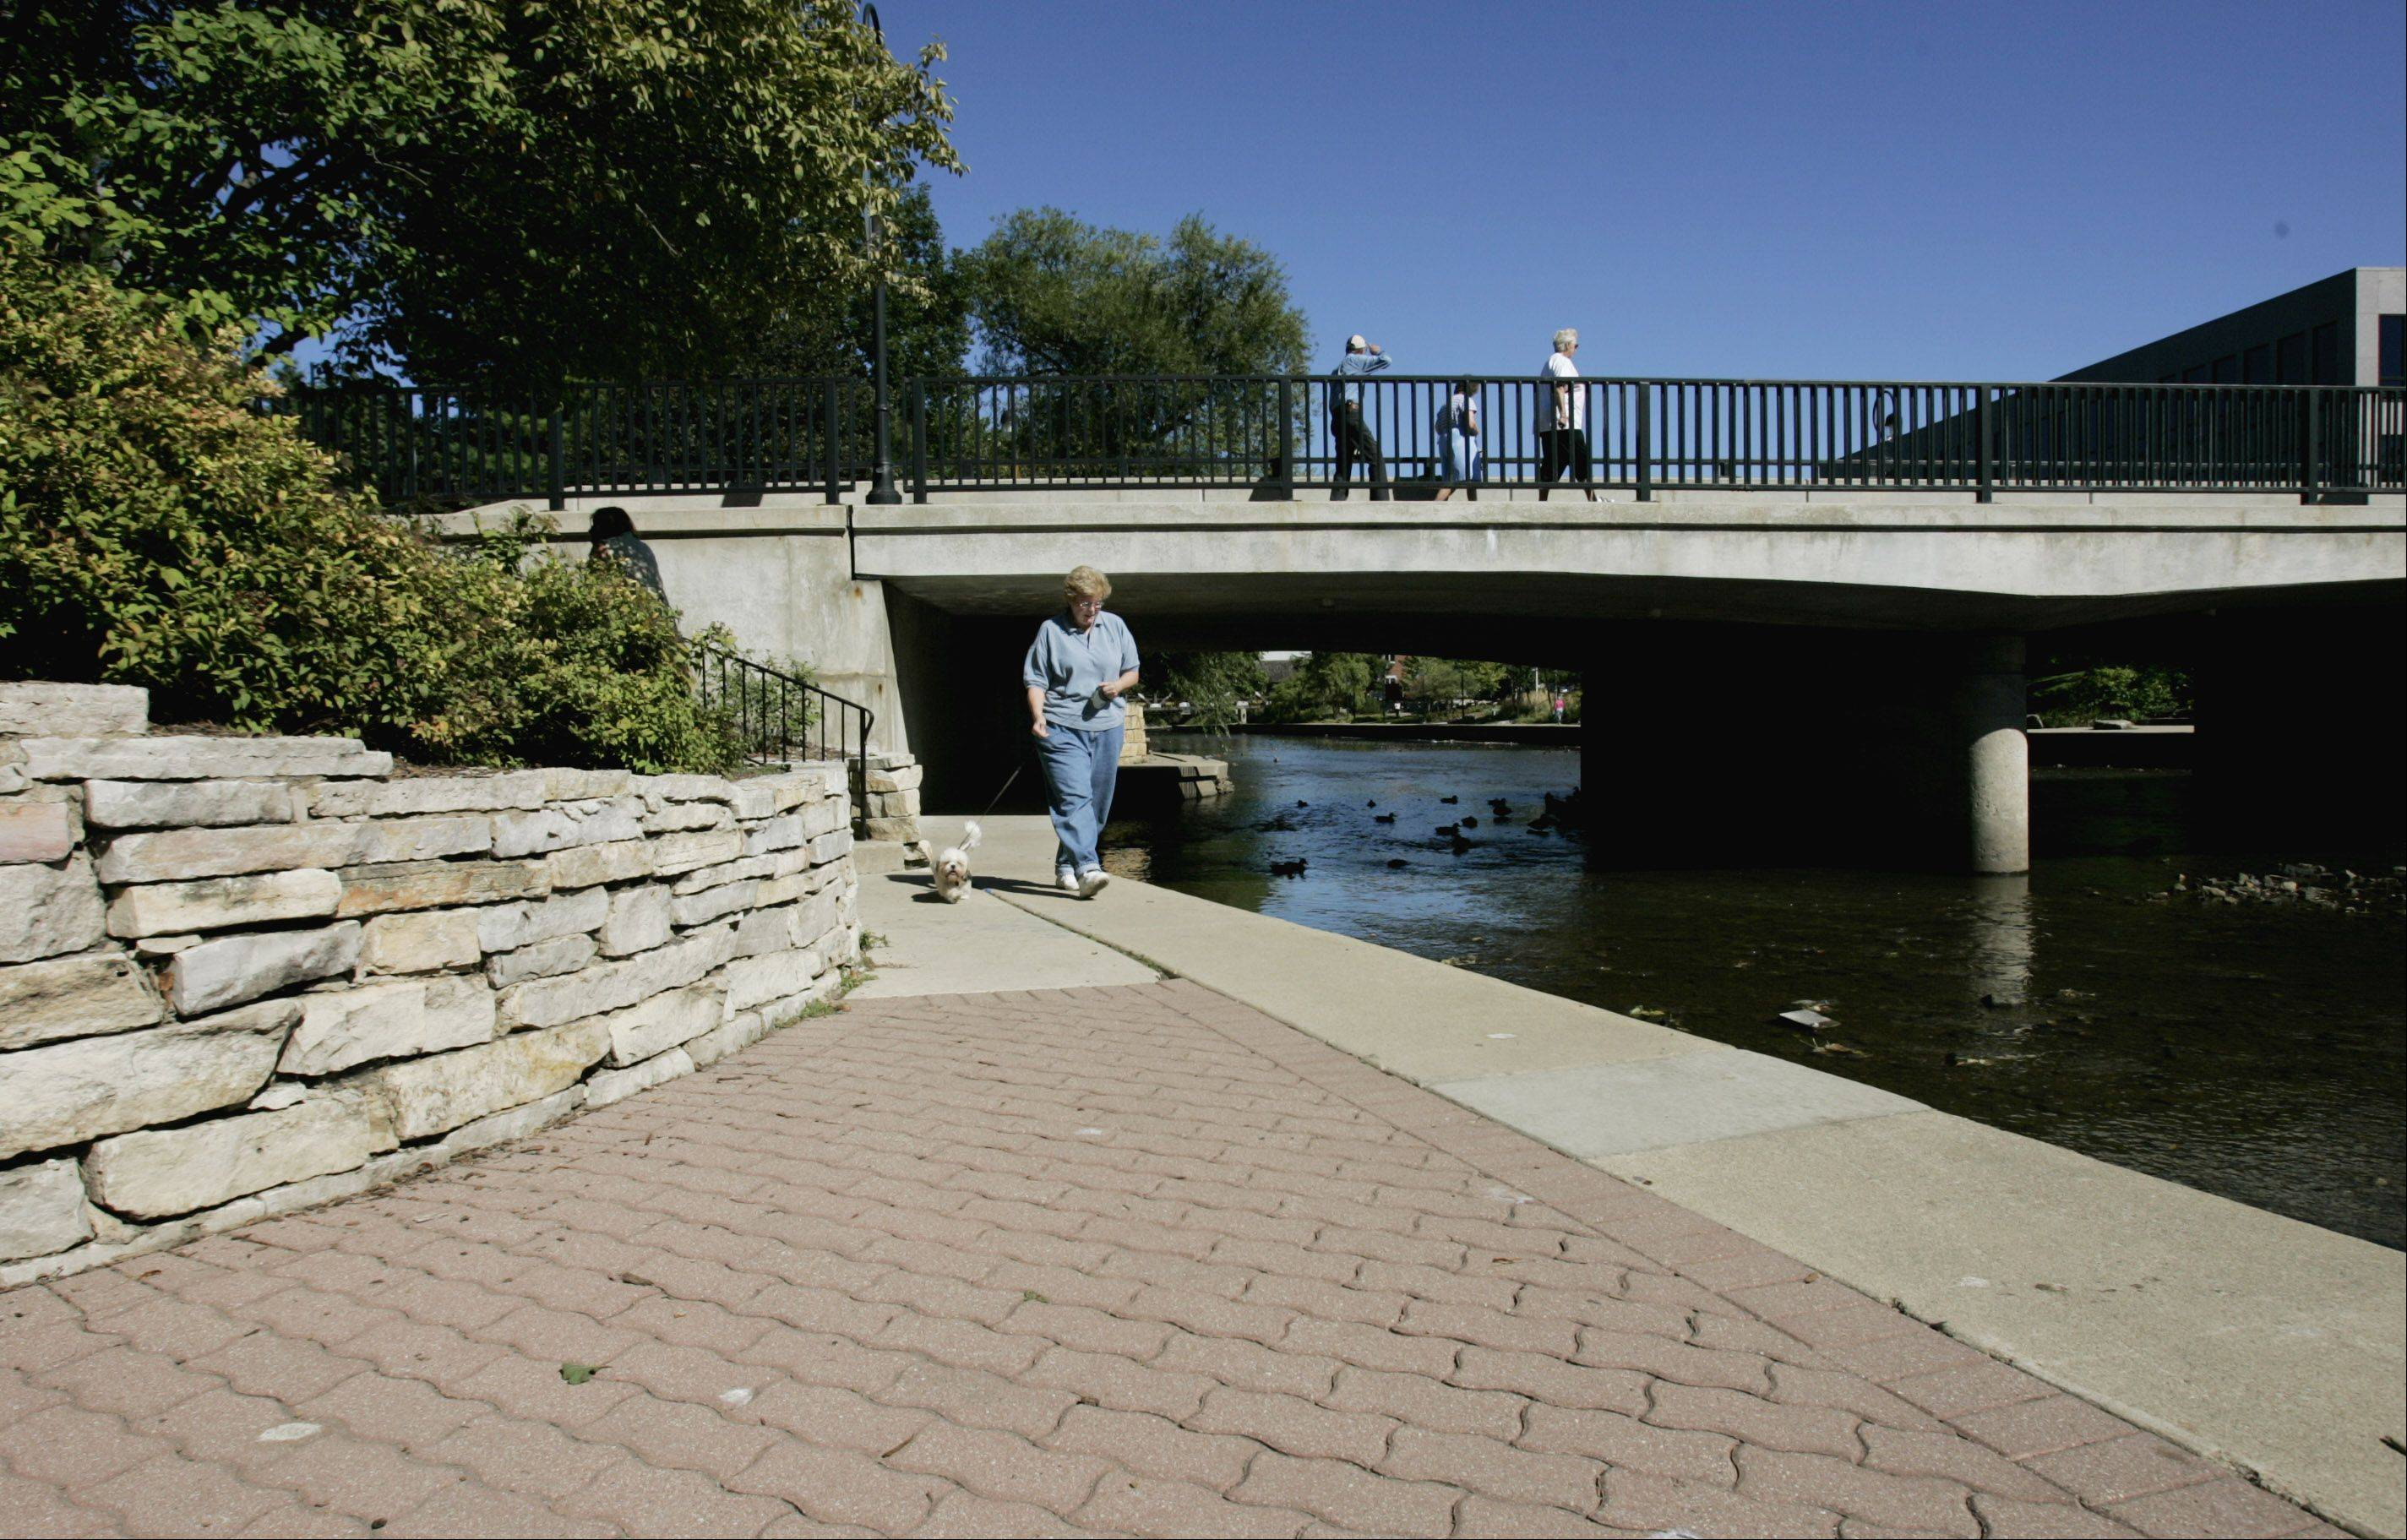 The Naperville Riverwalk Commission has approved a procedure explaining the steps toward approval that must be followed by any person or group looking to add a plaza, fountain, sculpture, memorial or other feature to the popular 1.75-mile path along the West Branch of the DuPage River.